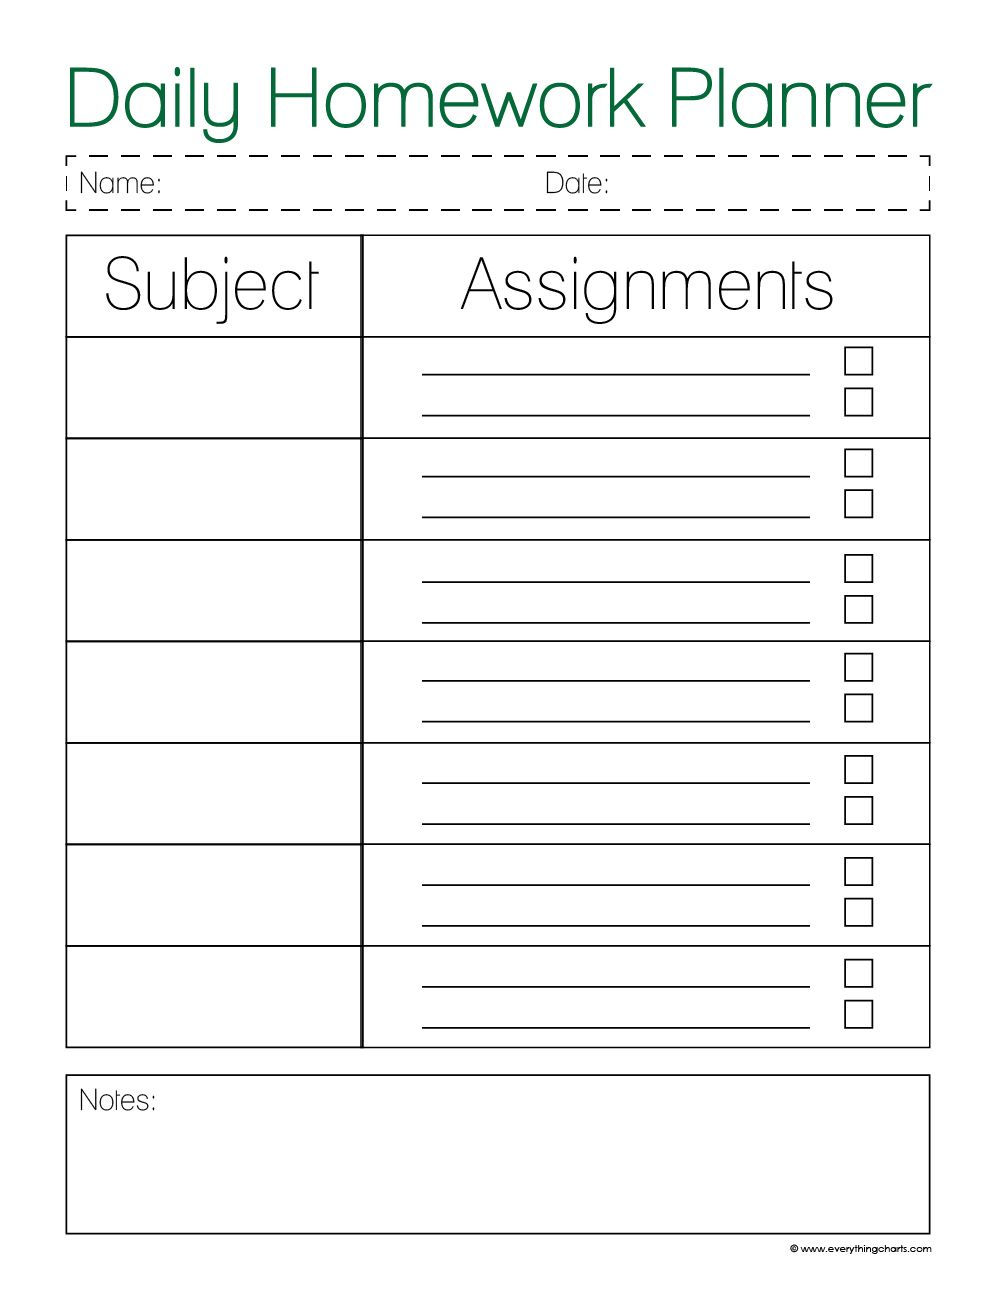 Daily homework planner ms crookshanks home work pinte for Create planner online